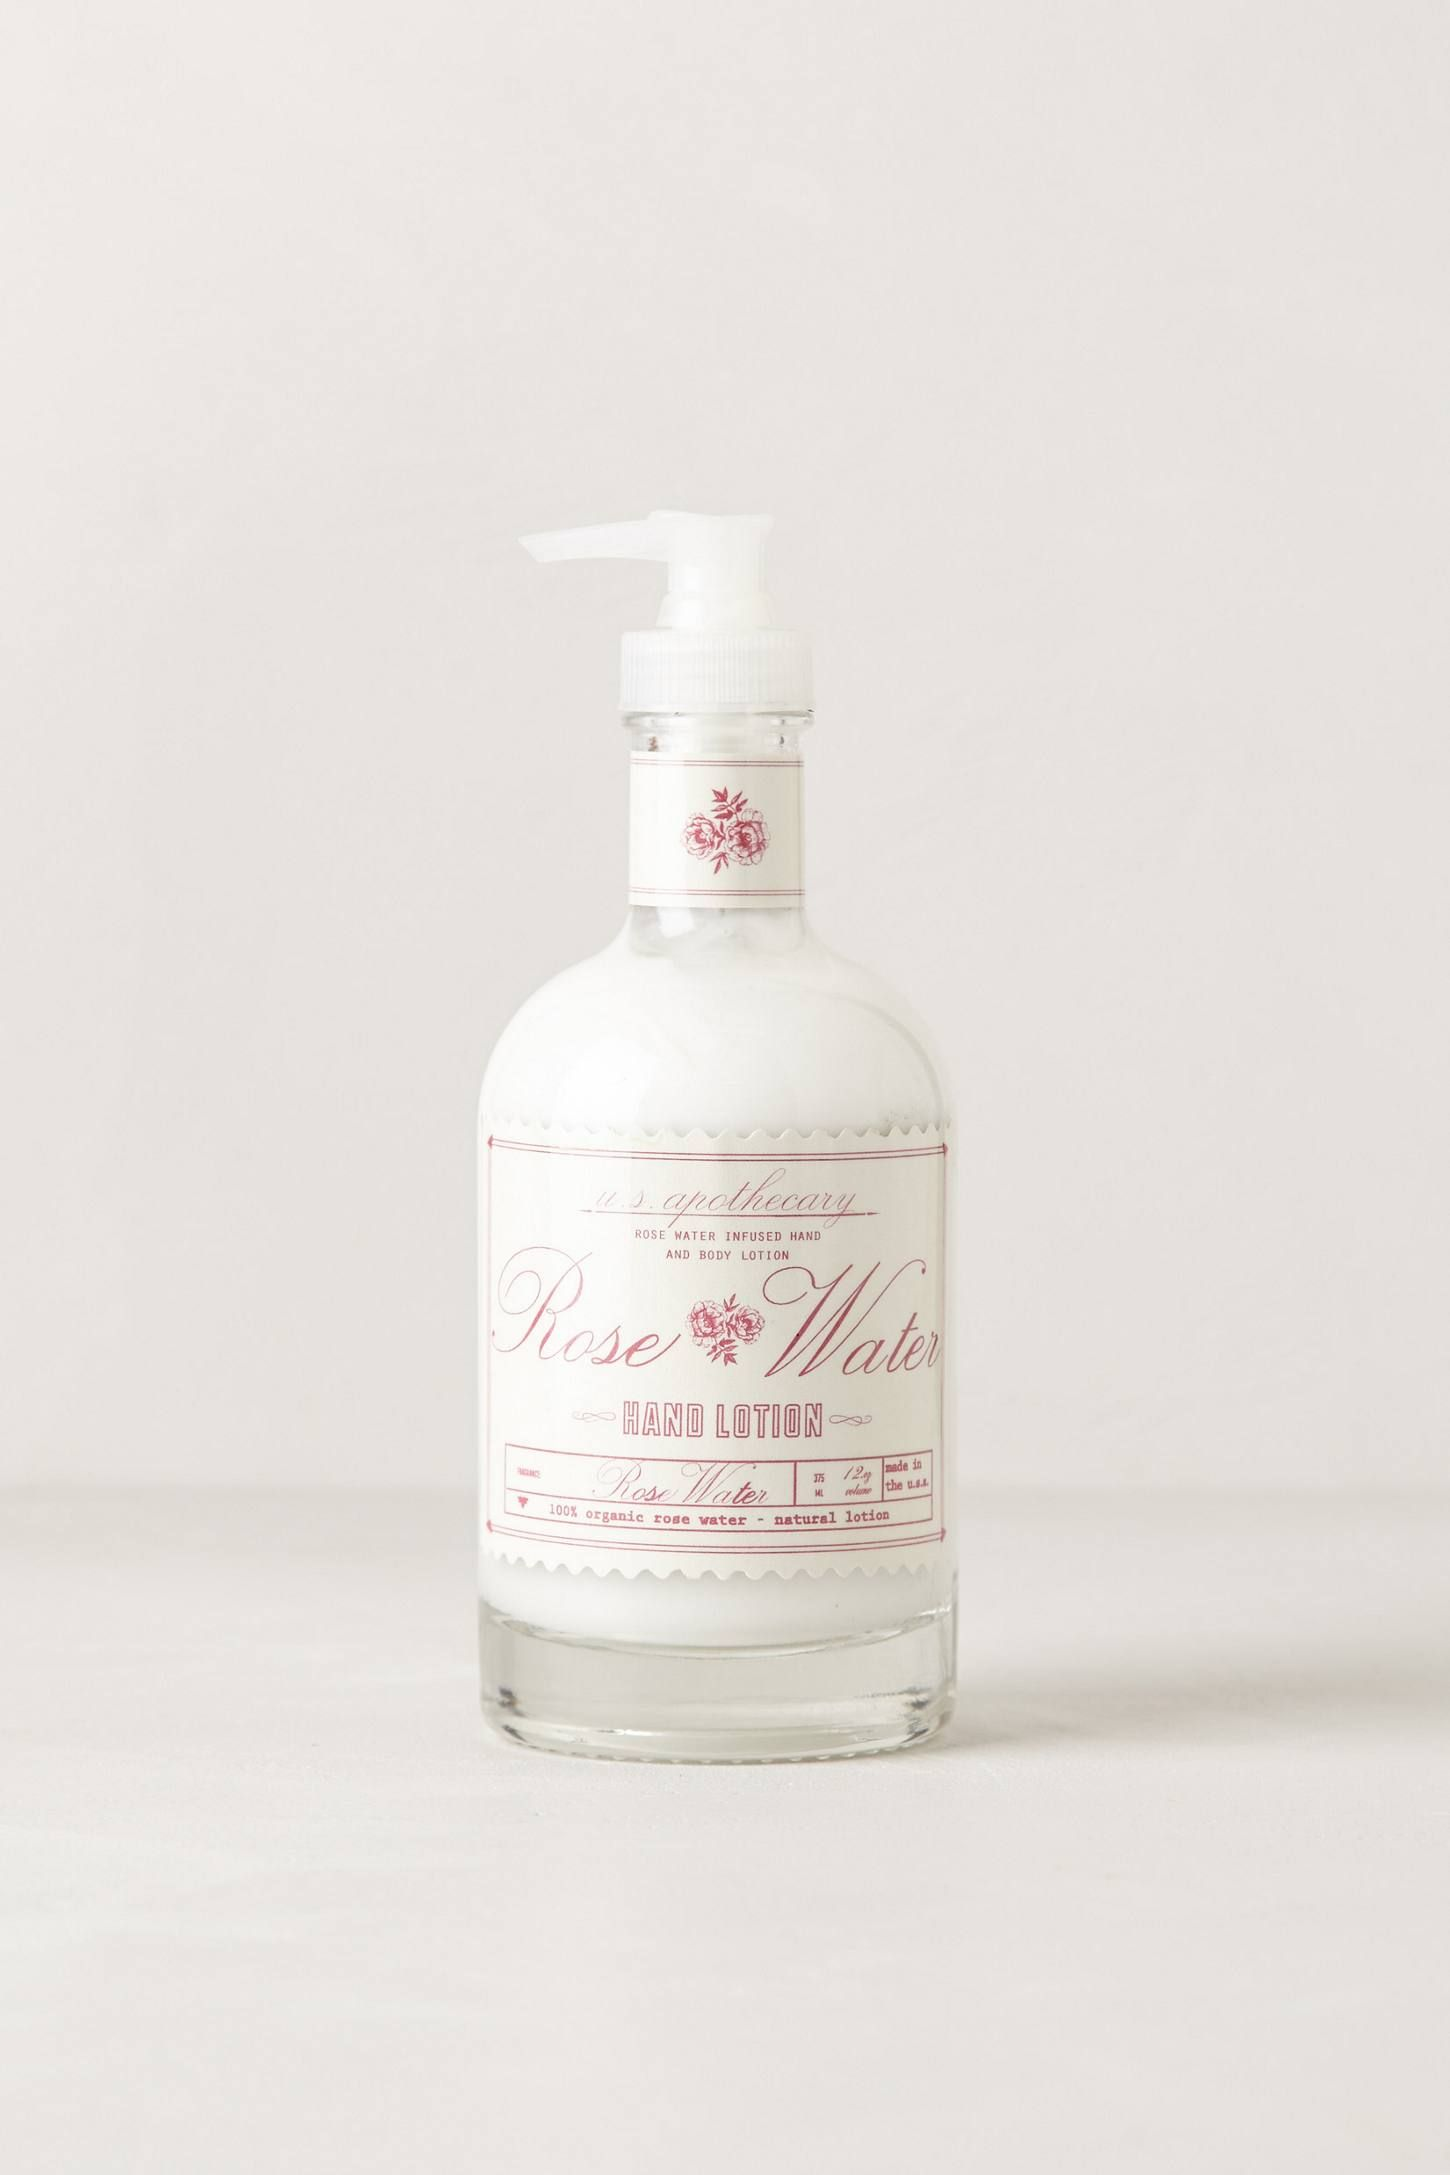 Apothekerflaschen Kaufen U S Apothecary Rose Water Lotion Anthropologie All I Want